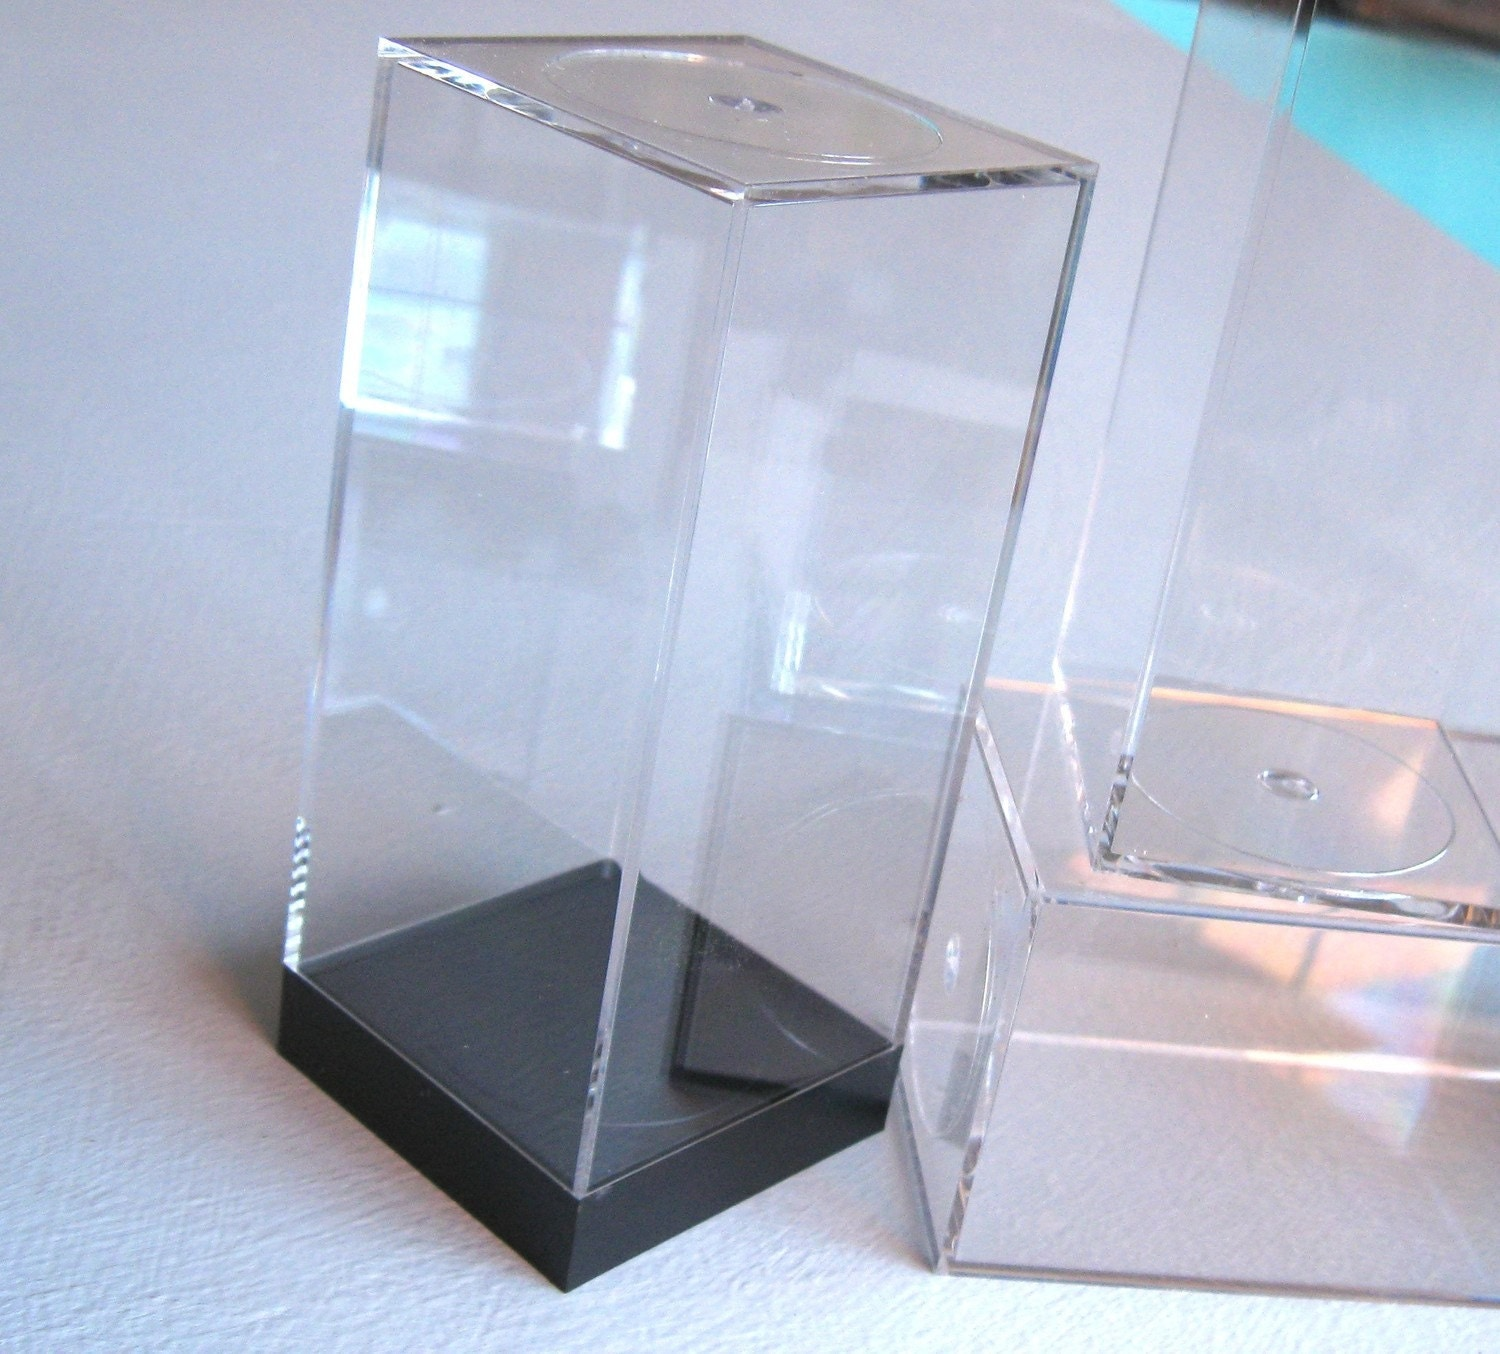 Clear Display Boxes 25 Small Clear Acrylic Display Boxes By Vivavivant On Etsy